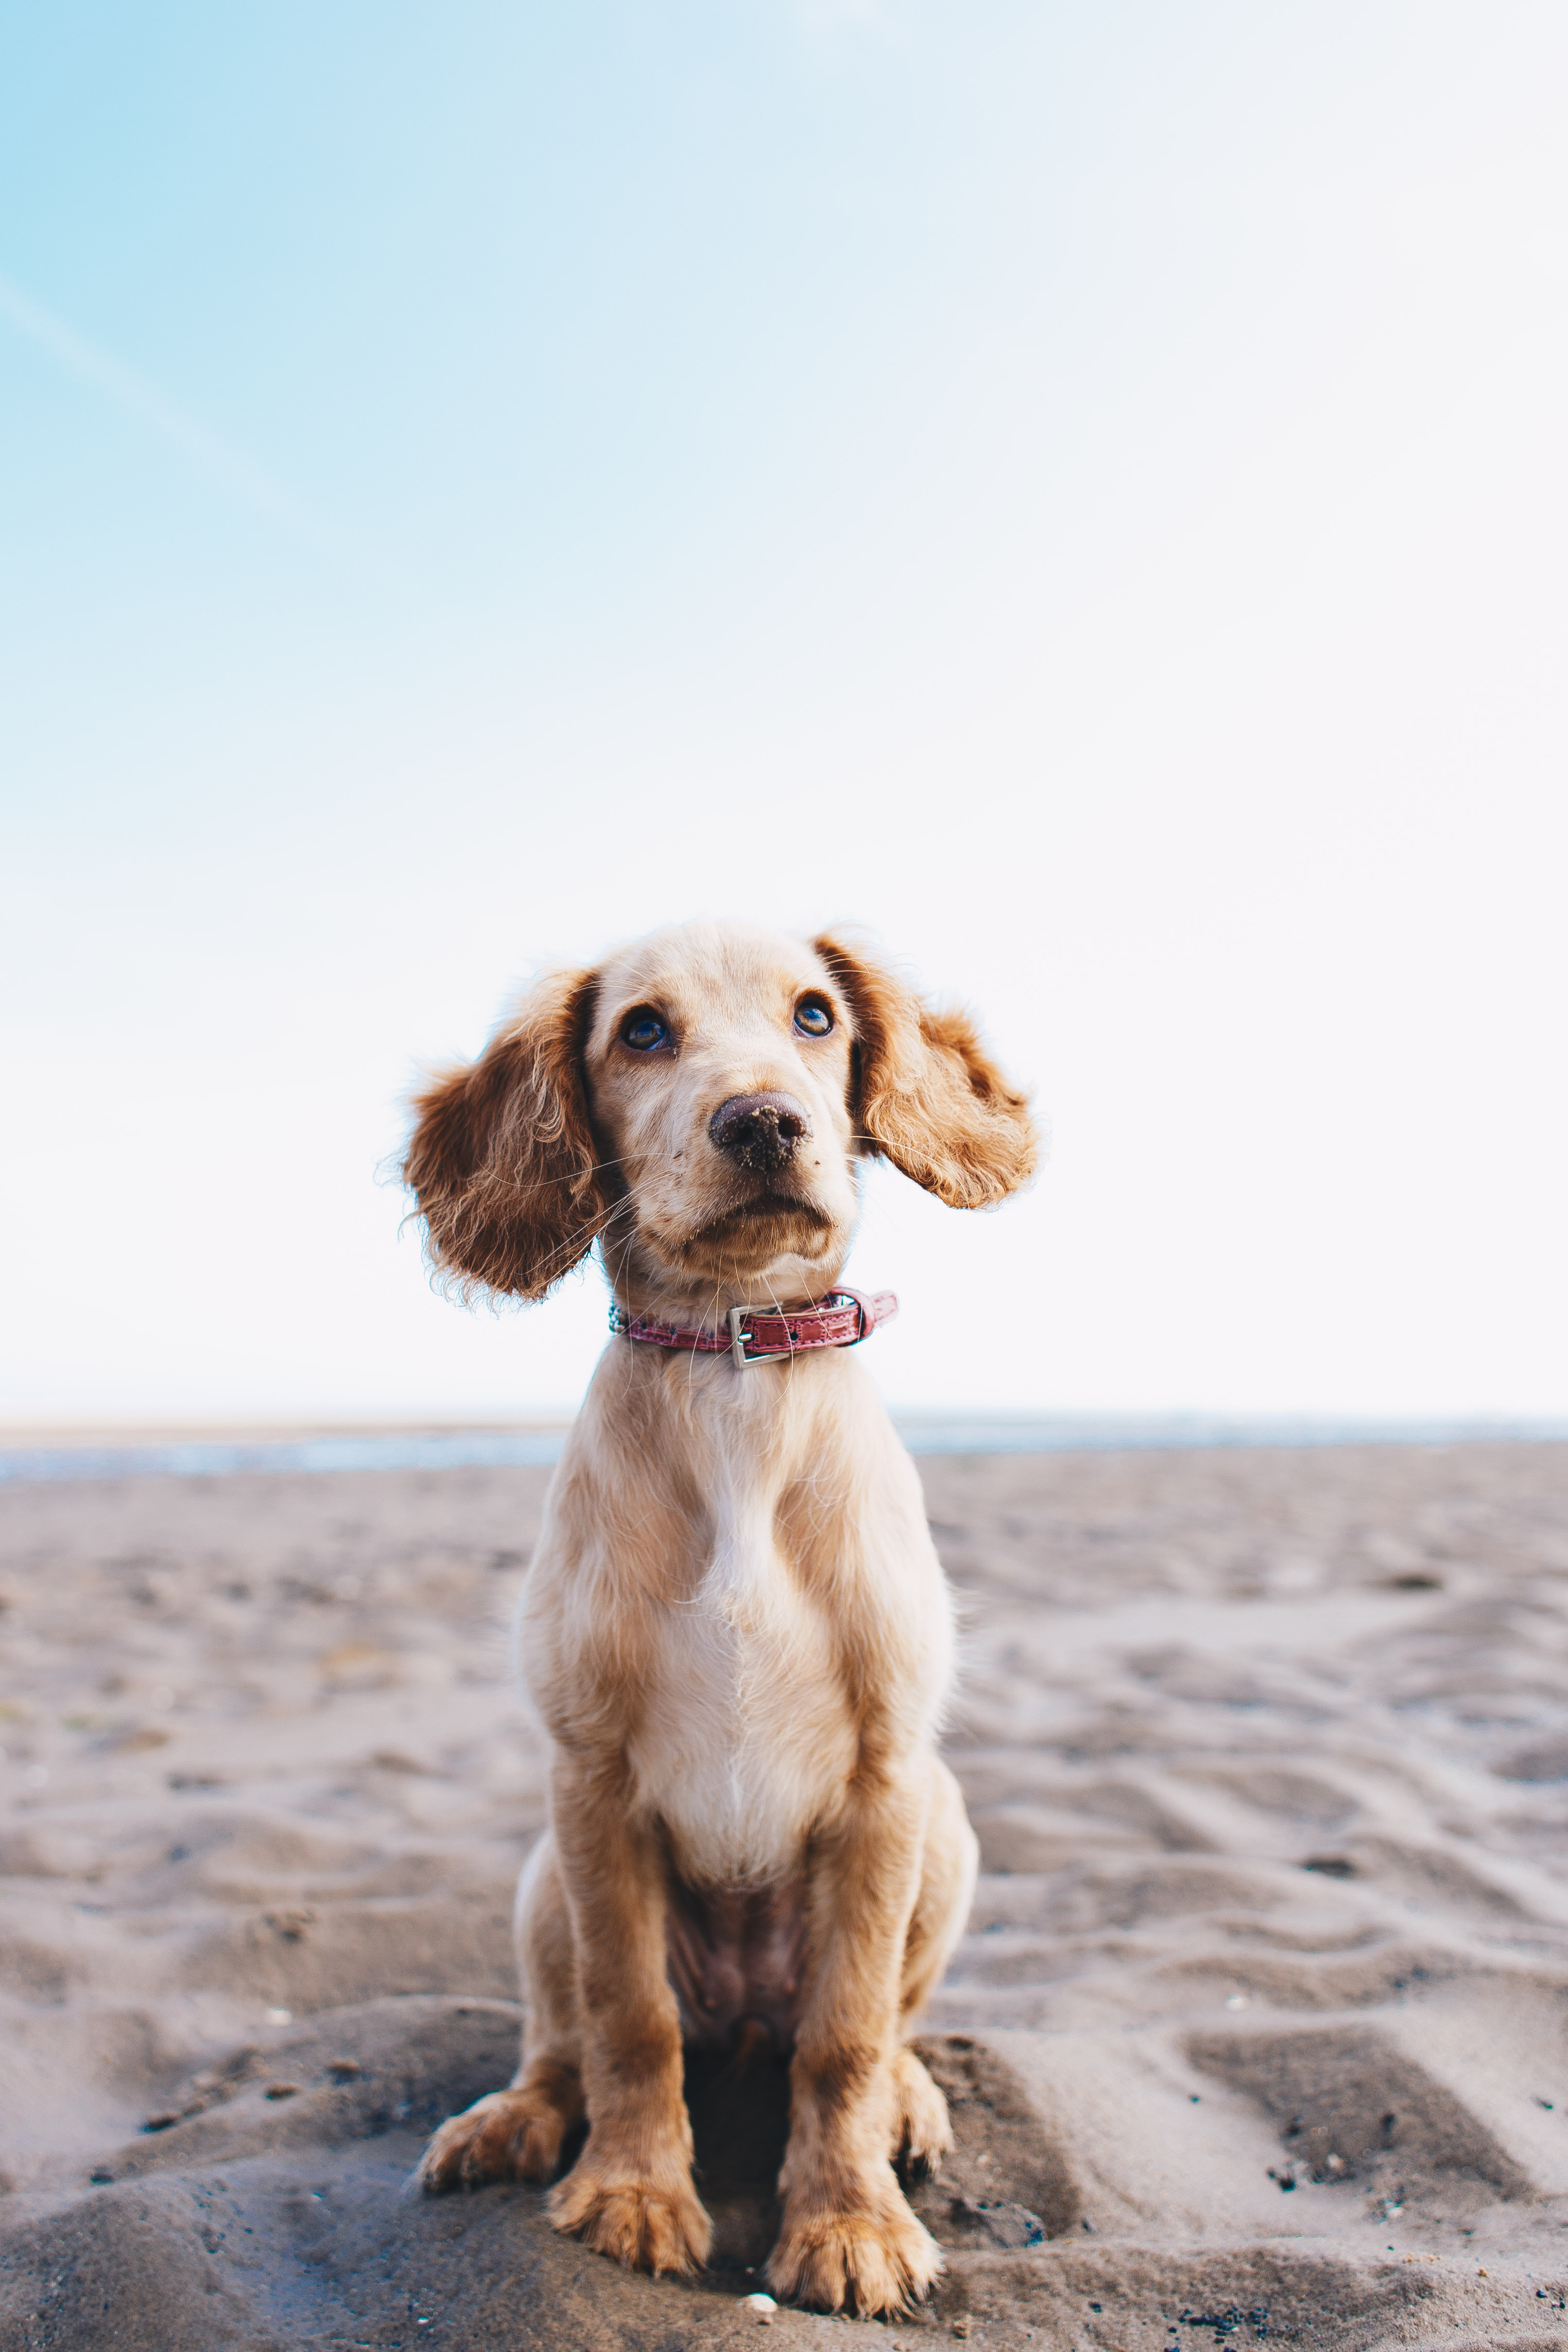 Girl On The Road Wallpaper Best 100 Dog Images Download Free Pictures On Unsplash